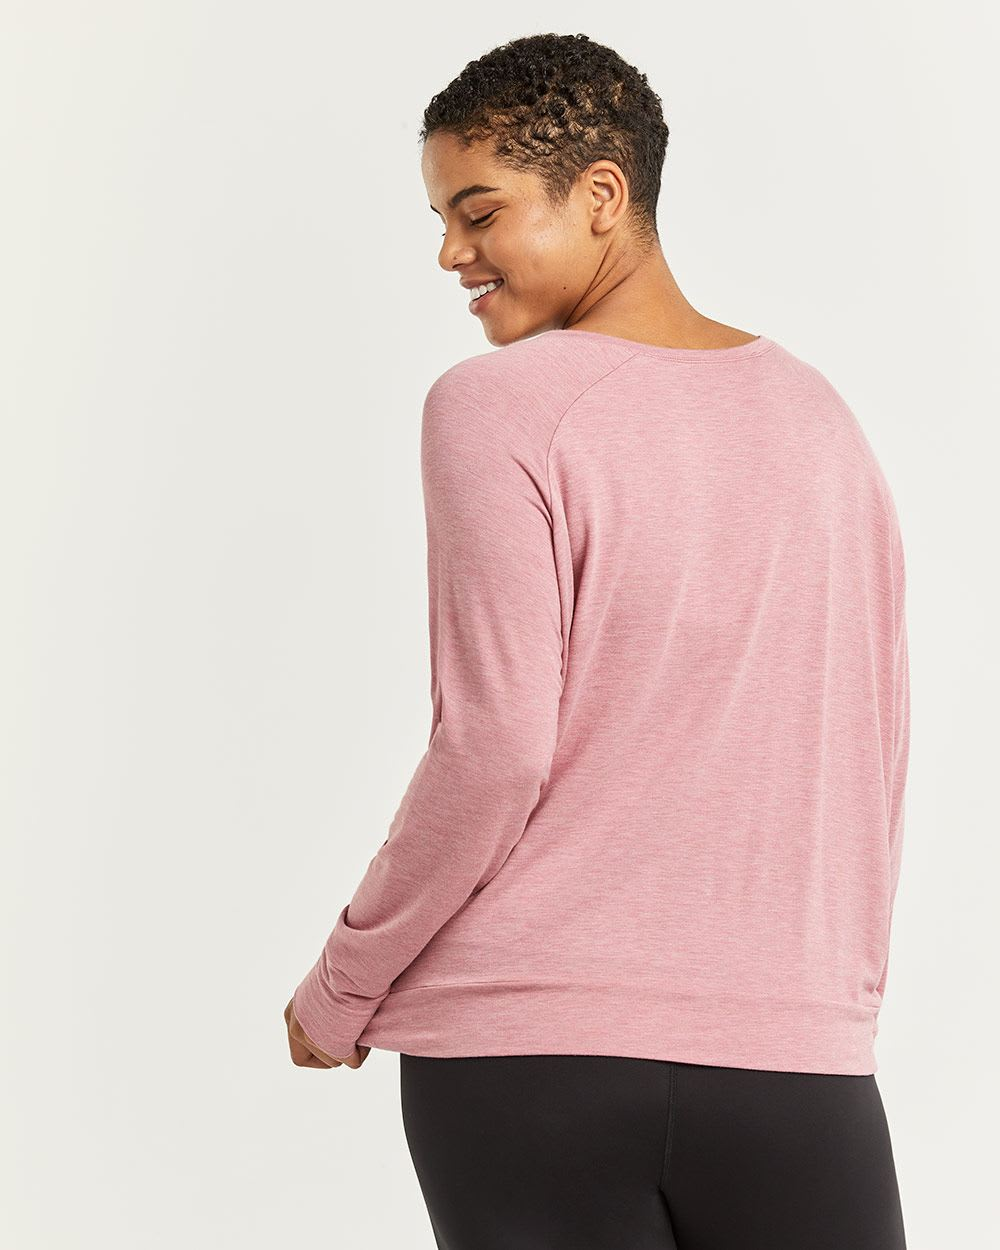 Hyba Front Knot Long Sleeve Tee